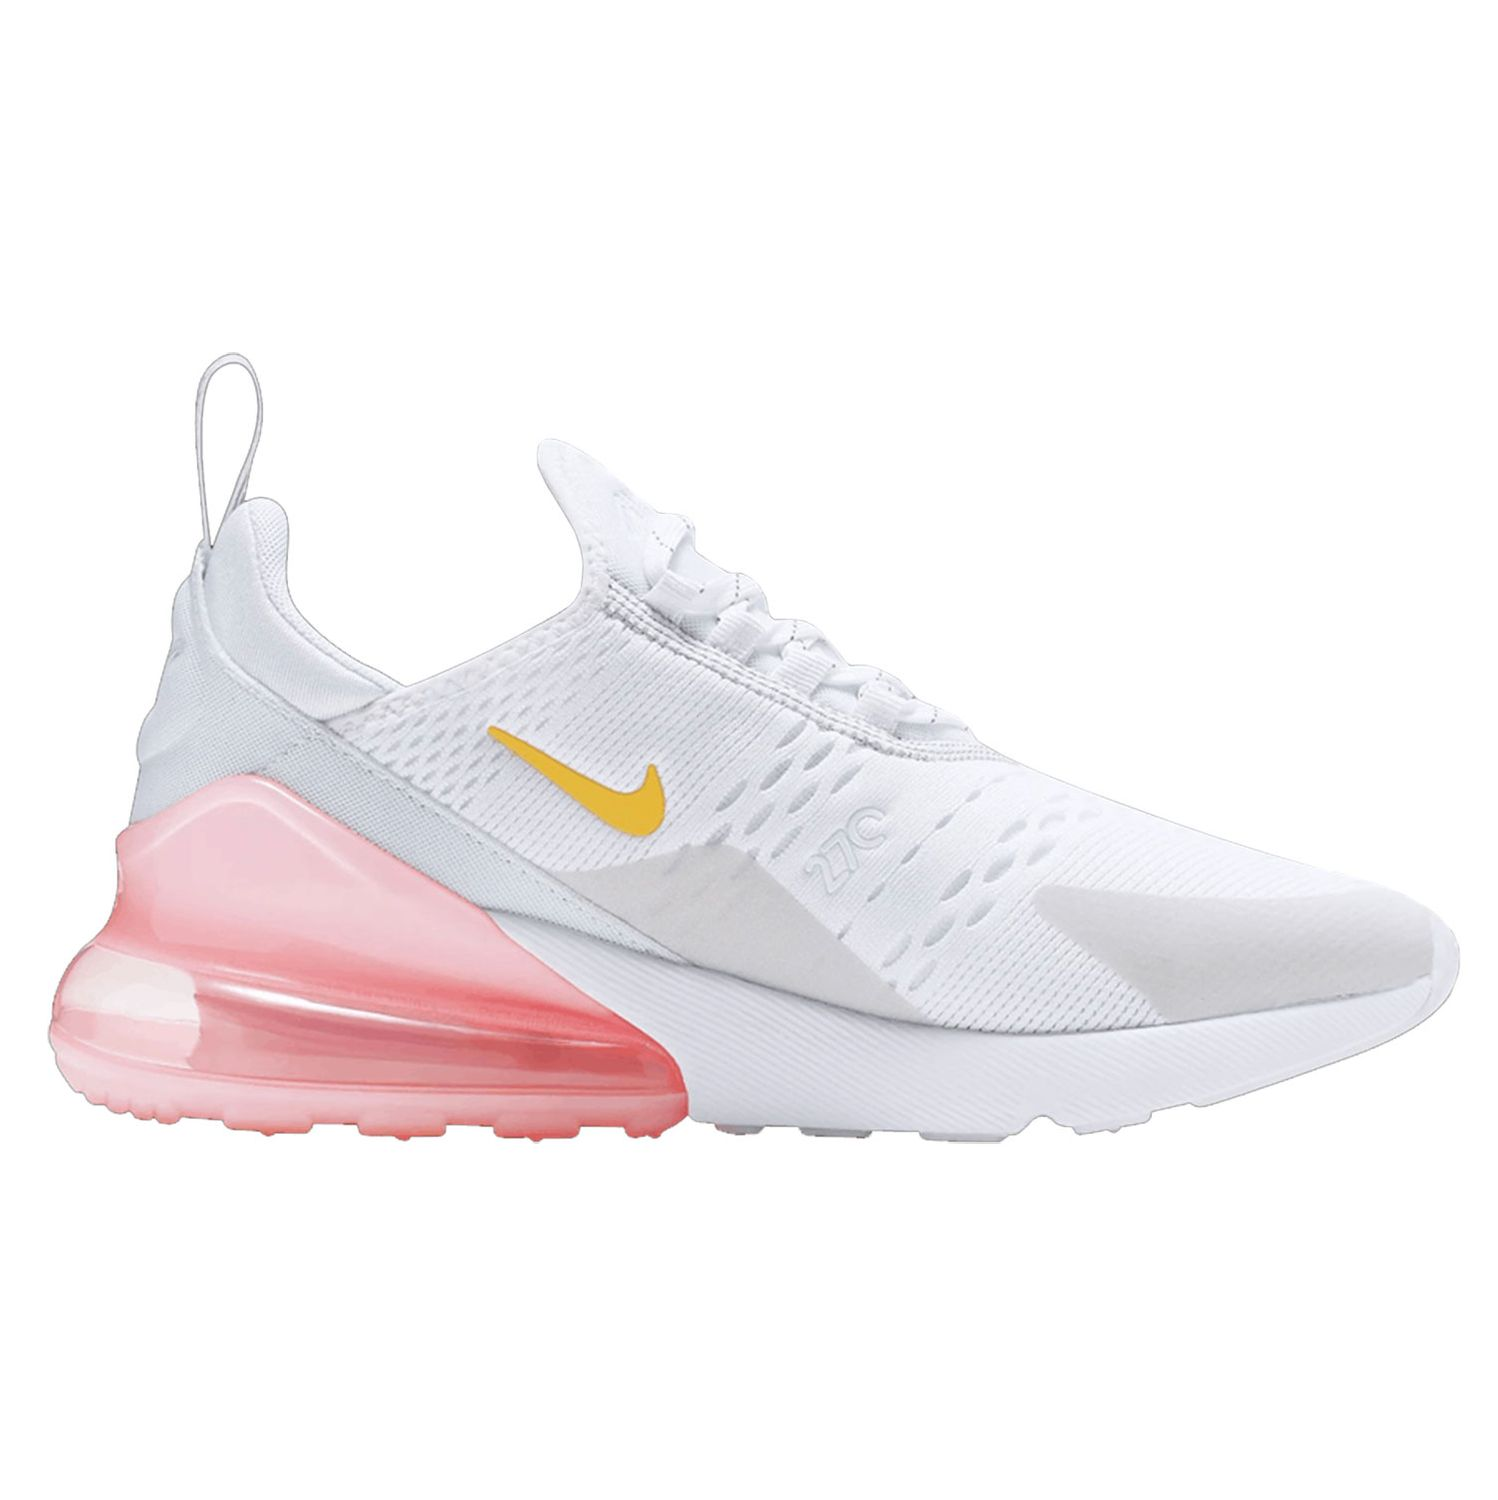 best quality low price low cost Nike W Air Max 270 Sneaker Damen weiß pink CI9088 100